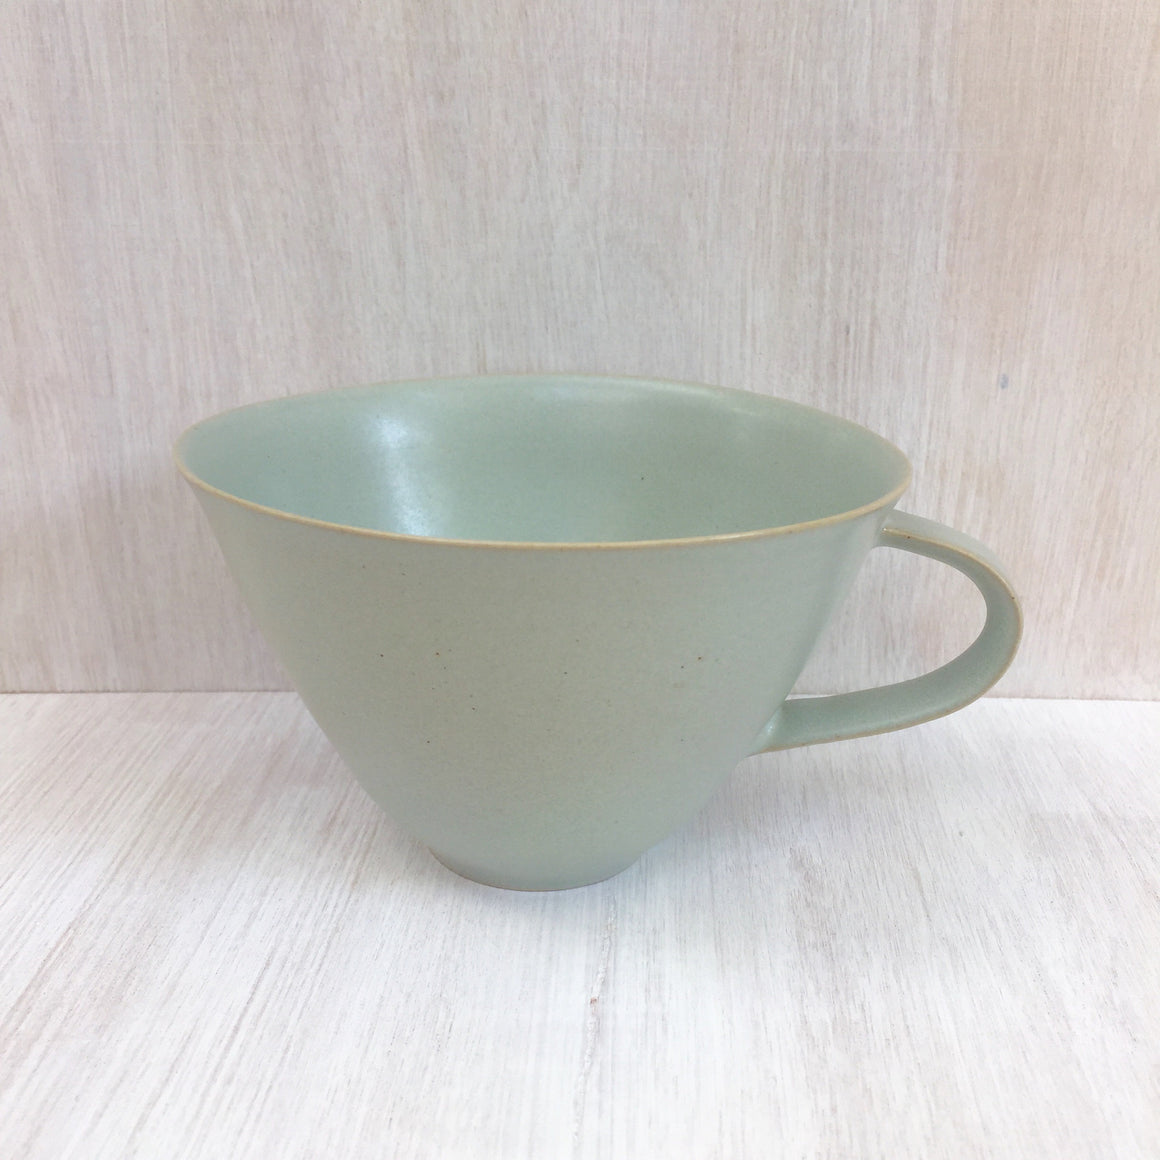 stuart carey blue tea cup